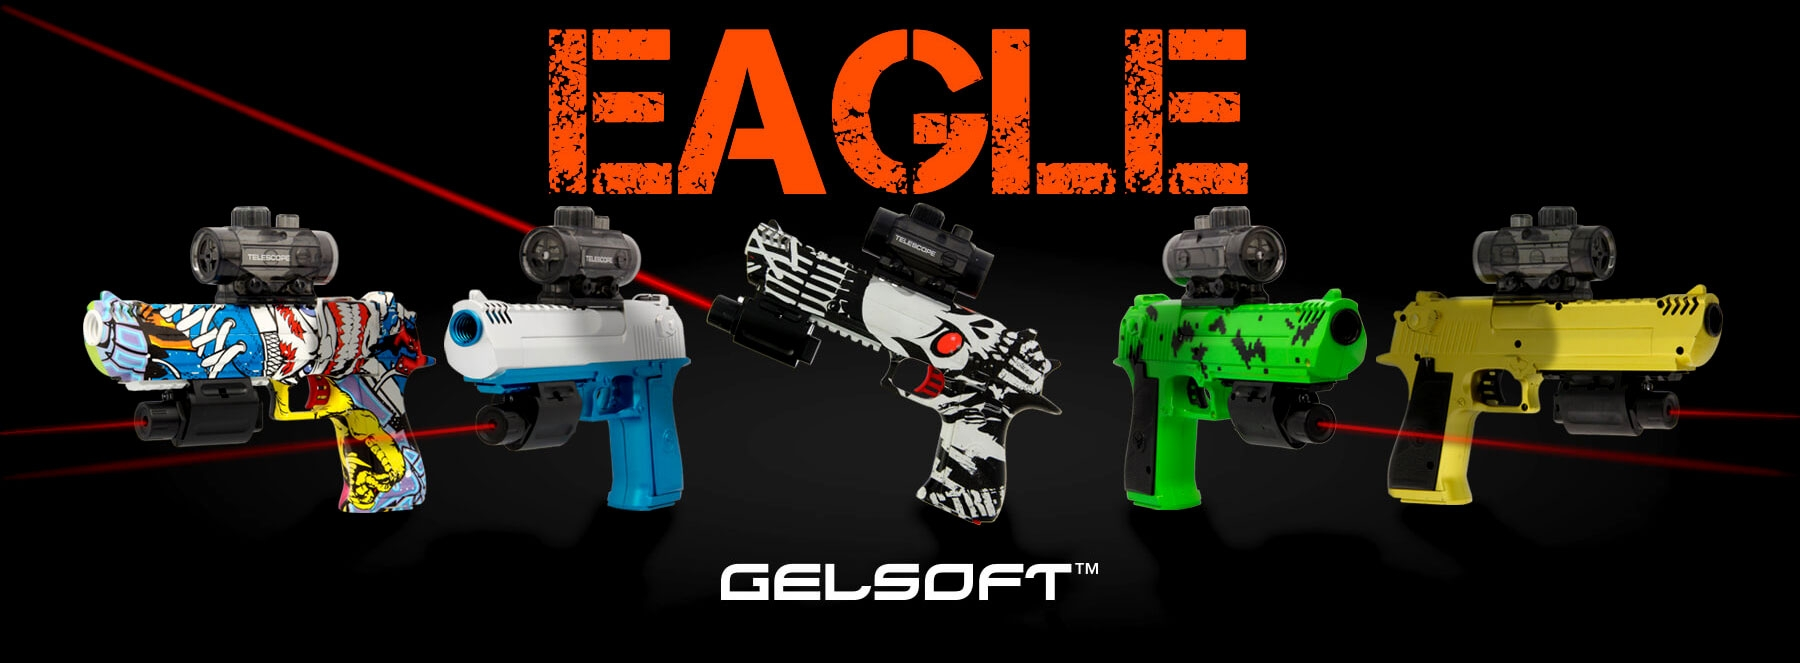 gelsoft eagle banner link